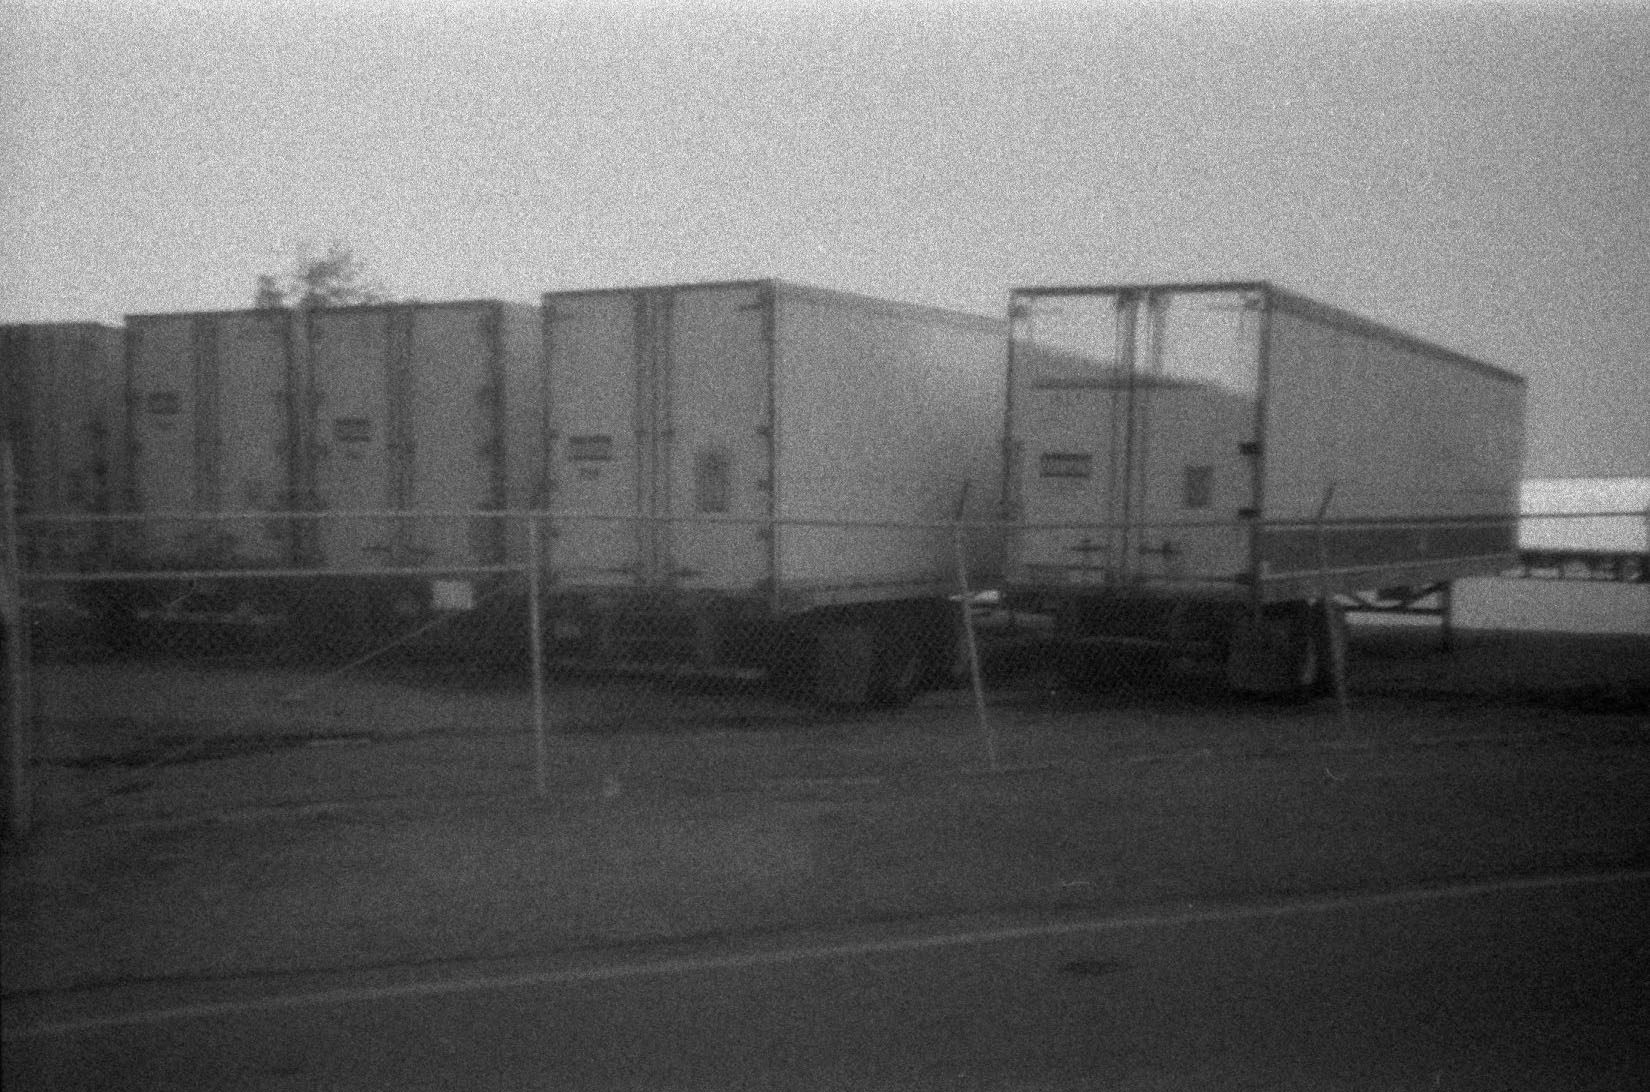 trailers_lined_up.jpg